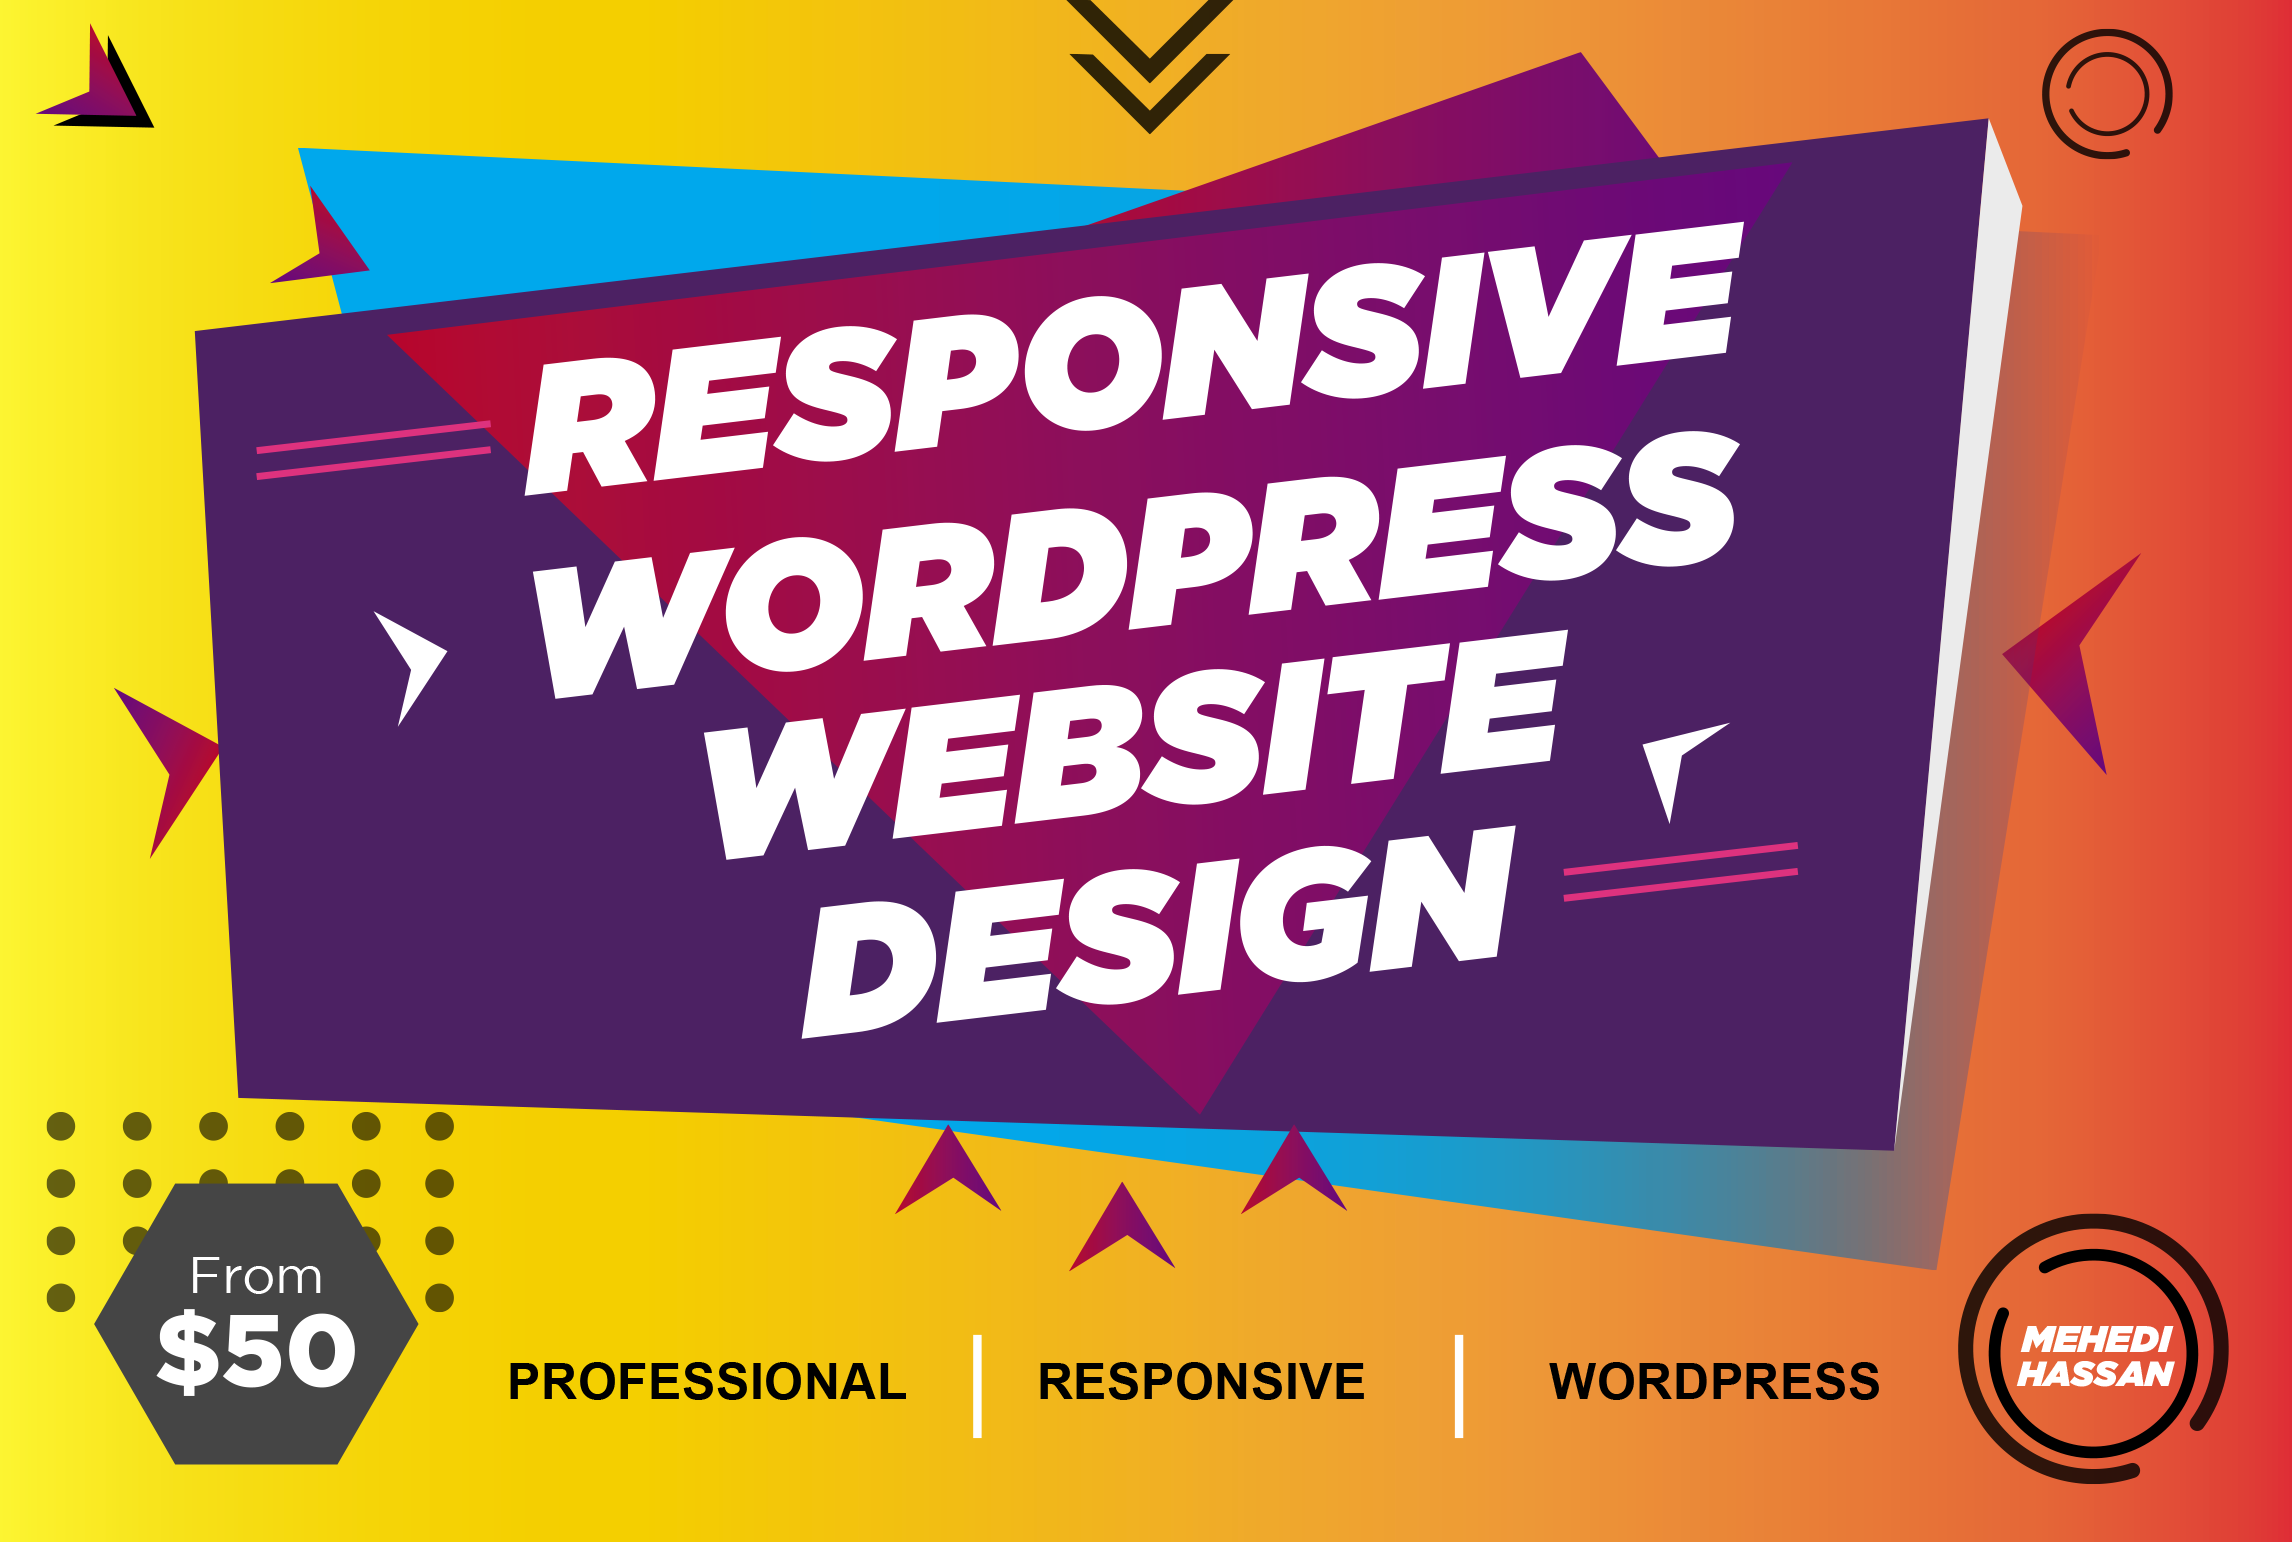 I will design a professional WordPress and ecommerce website